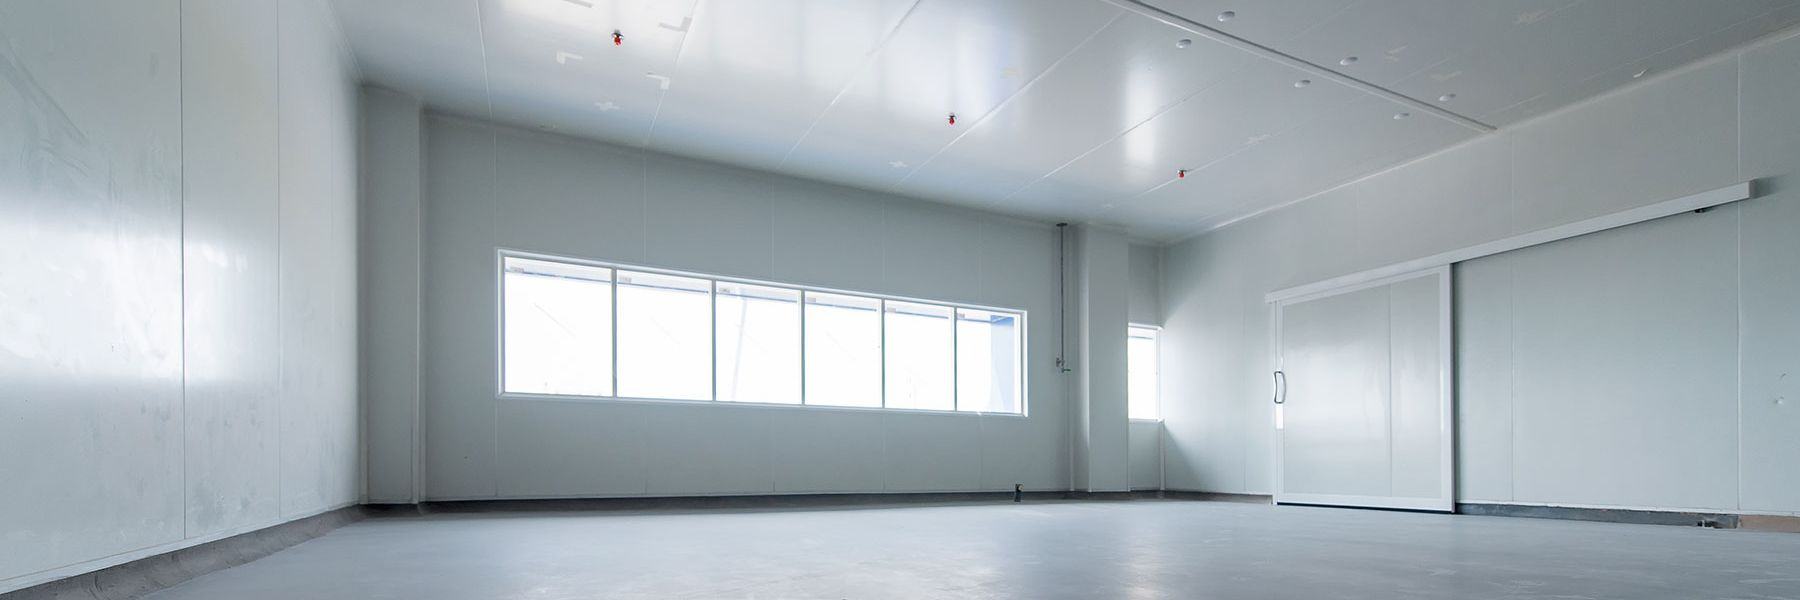 Do you own a commercial property which is currently vacant?